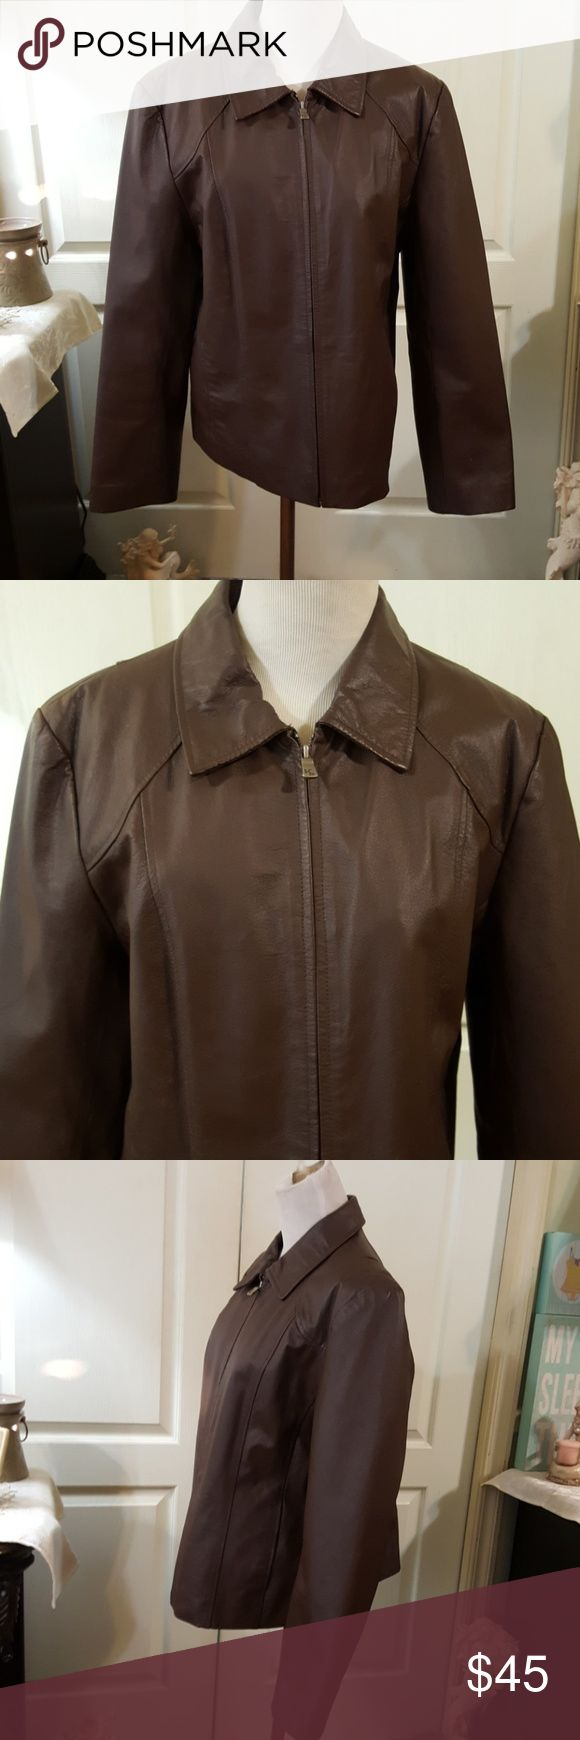 Kim Rogers Brown Leather Jacket. Sz Large. Very nice brown leather jacket by Kim Rogers. I cut out the size tag...it was scrstchy. As you can see from the approx measurements in pics, it will fit a size Large the best, IMO. I was a size Lg. when I wore it. Its completely lined, has outside pockets & one inside pocket. No holes or stains. Would look brand new with some leather cleaner to shine it up, it wasn't worn often. Zips in front. Zoom in on pics to see condition for yourself. Would…